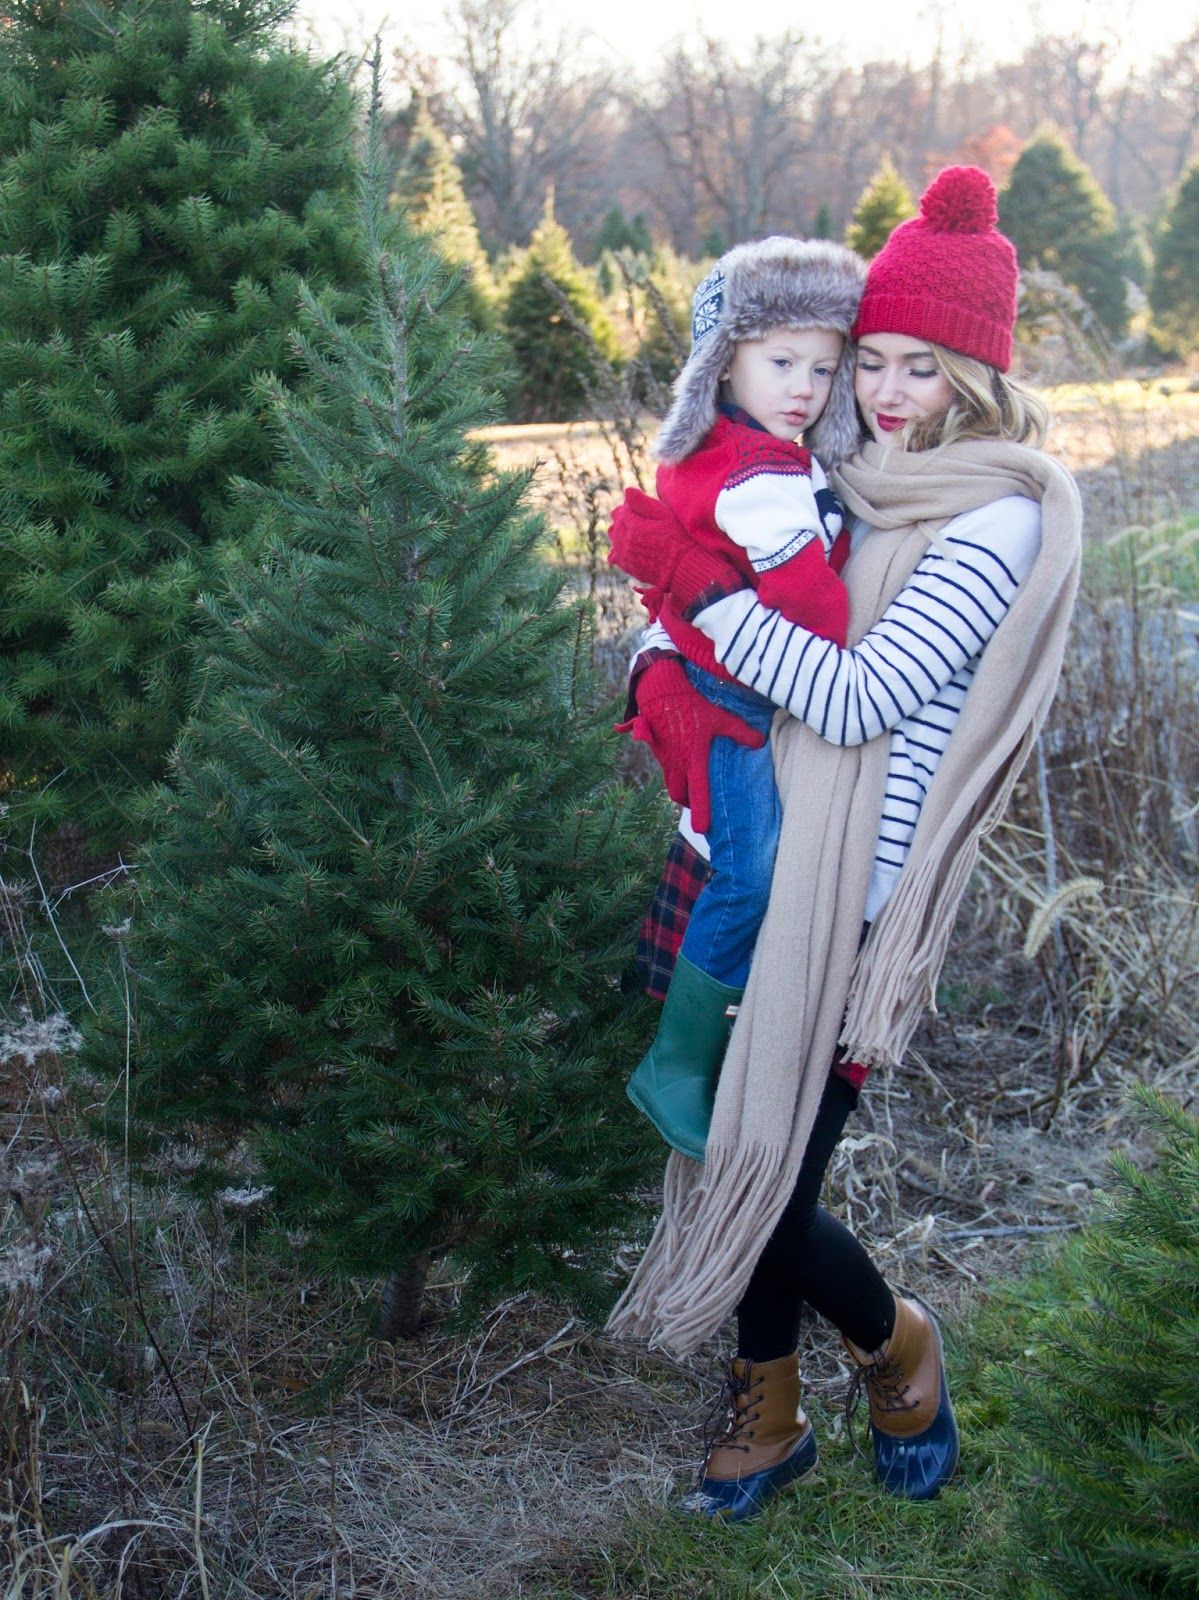 Christmas Tree Farm Outfits With Payless Shoes Christmas Tree Farm Family Photos Womens Winter Outfit Best Black Friday Farm Clothes Christmas Tree Farm